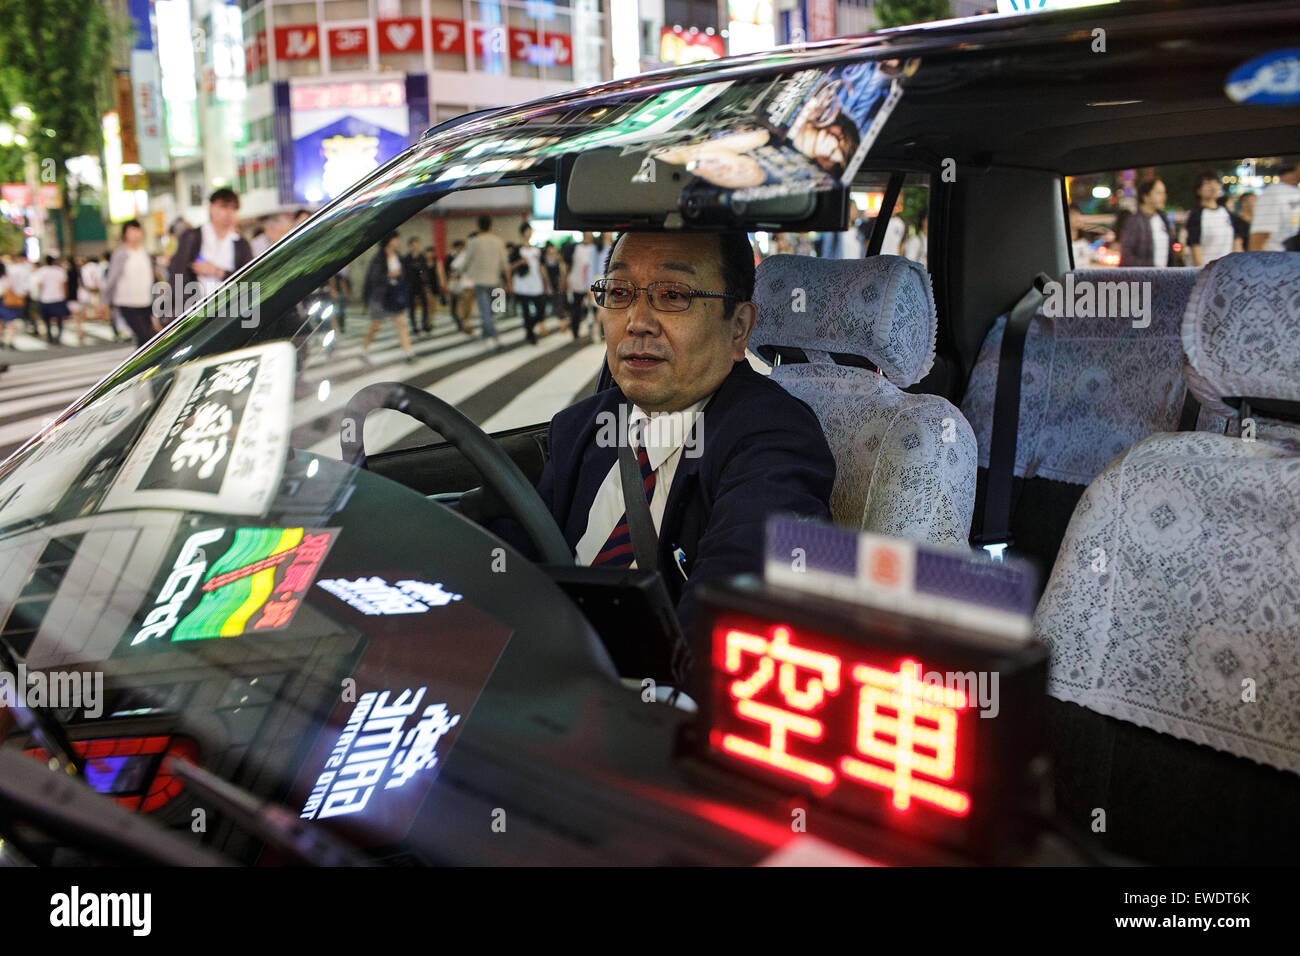 A taxi driver inside his car at night in Shinjuku, Tokyo, Japan Stock Photo